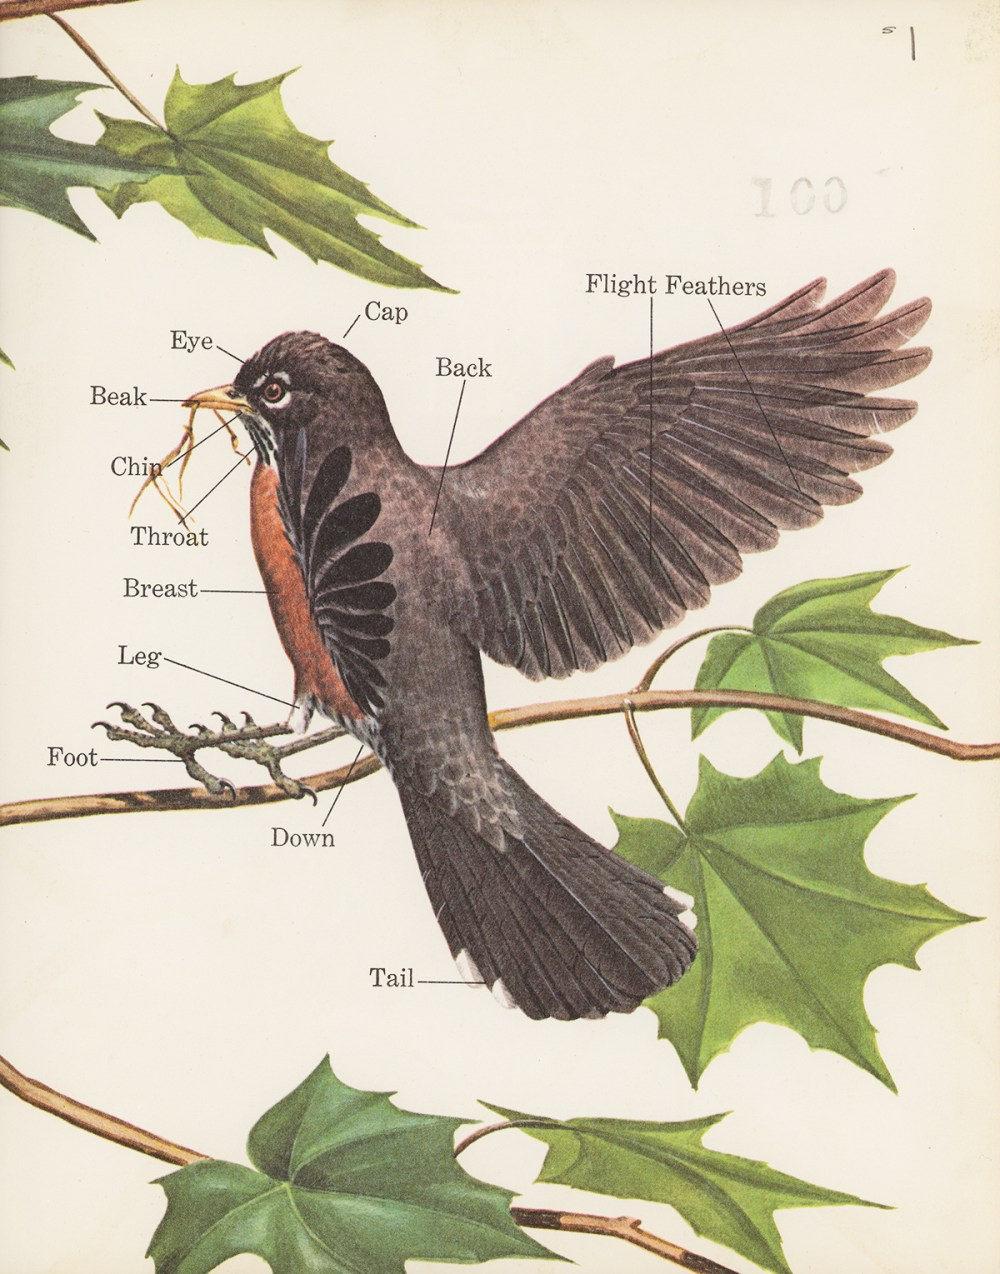 medium resolution of here is another book with fully illustrated endpages and these feature a very simplified anatomical diagram of a robin bringing a twig to a nest